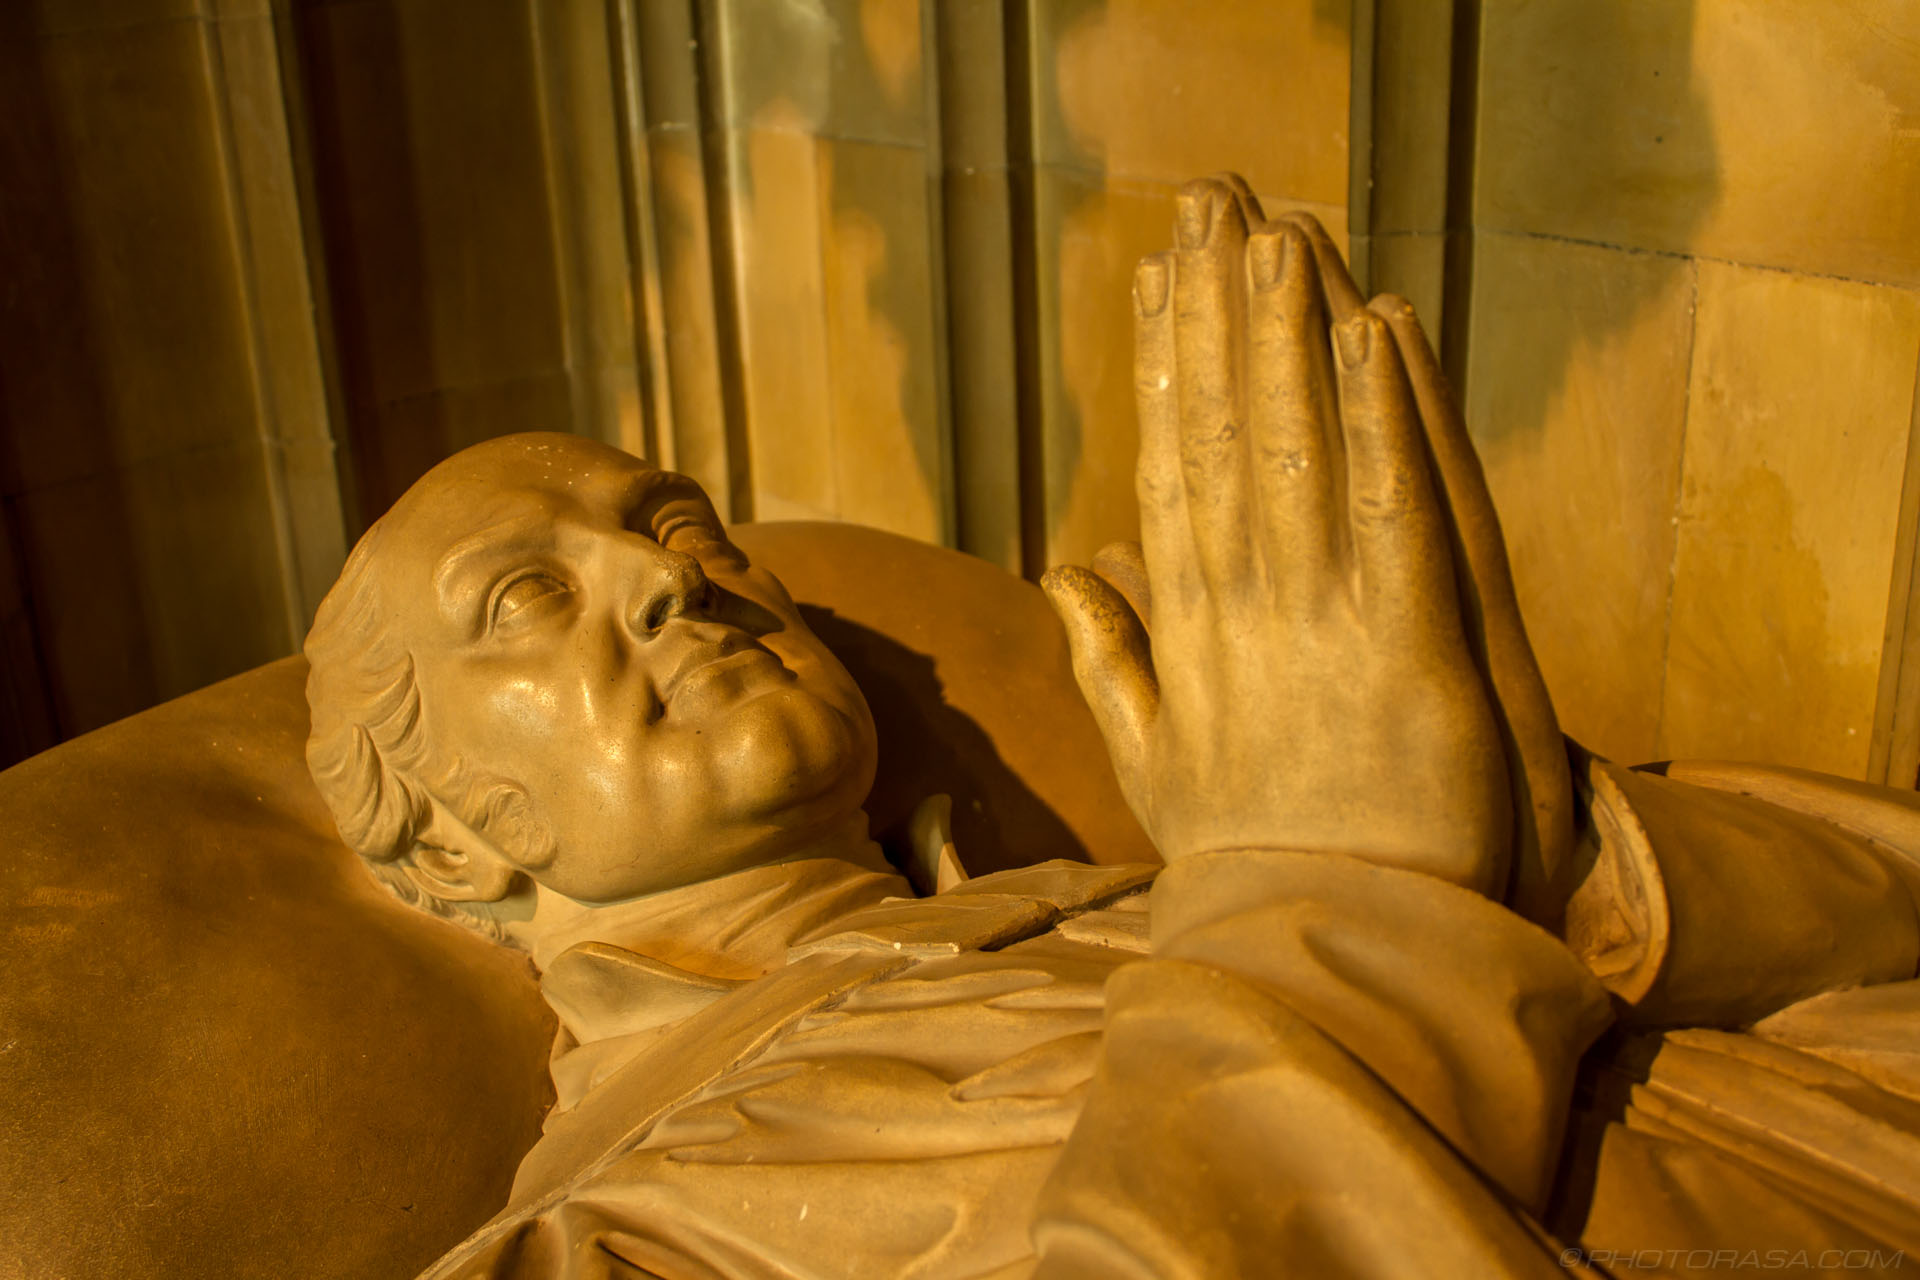 http://photorasa.com/canterbury-cathedral/tomb-statue-in-prayer-of-dean-william-rowe-lyall/